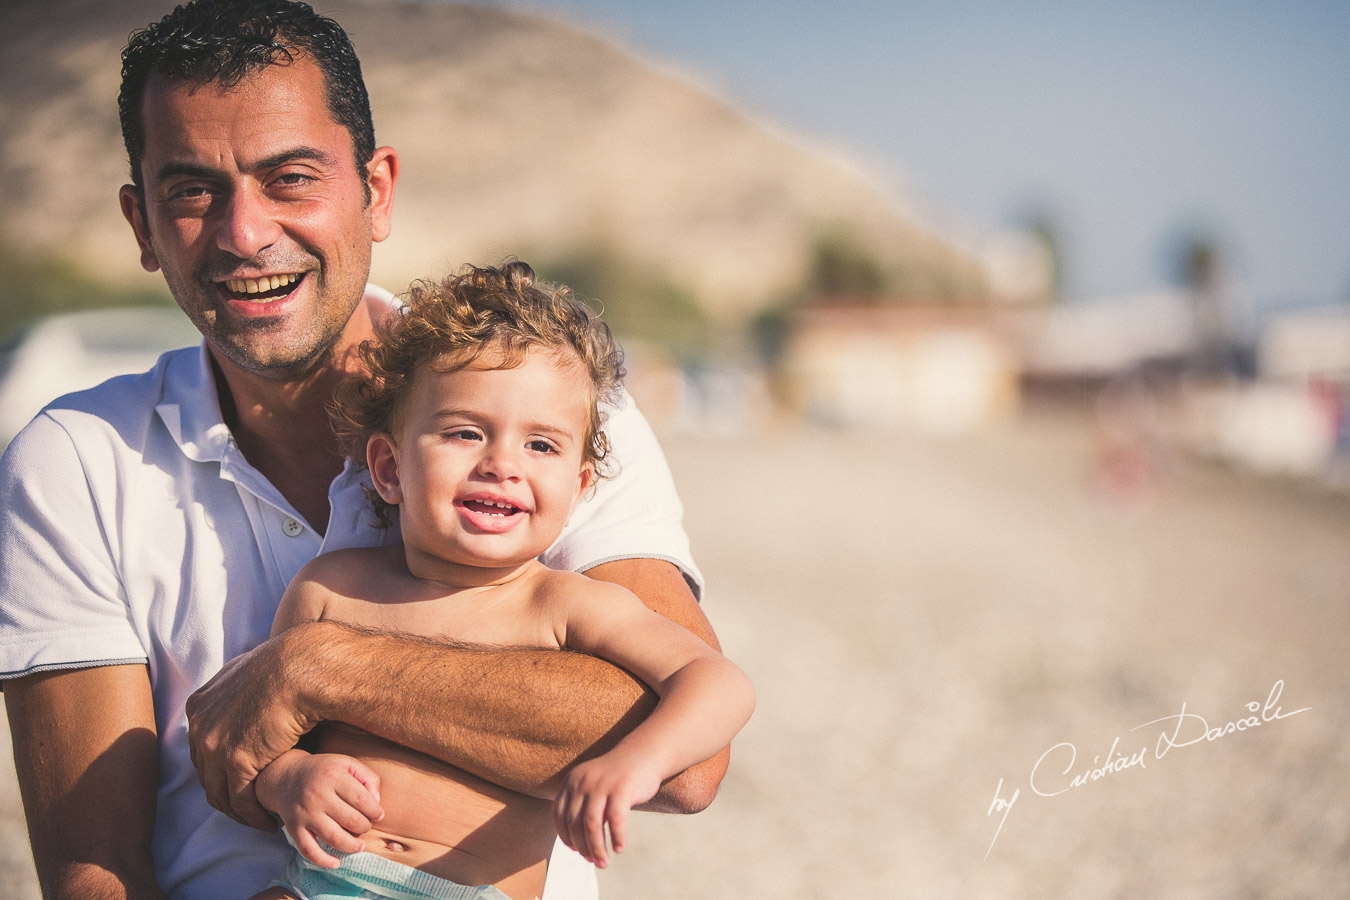 Amazing Limassol Anniversary Photography - Andreas is 1. Photographer: Cristian Dascalu